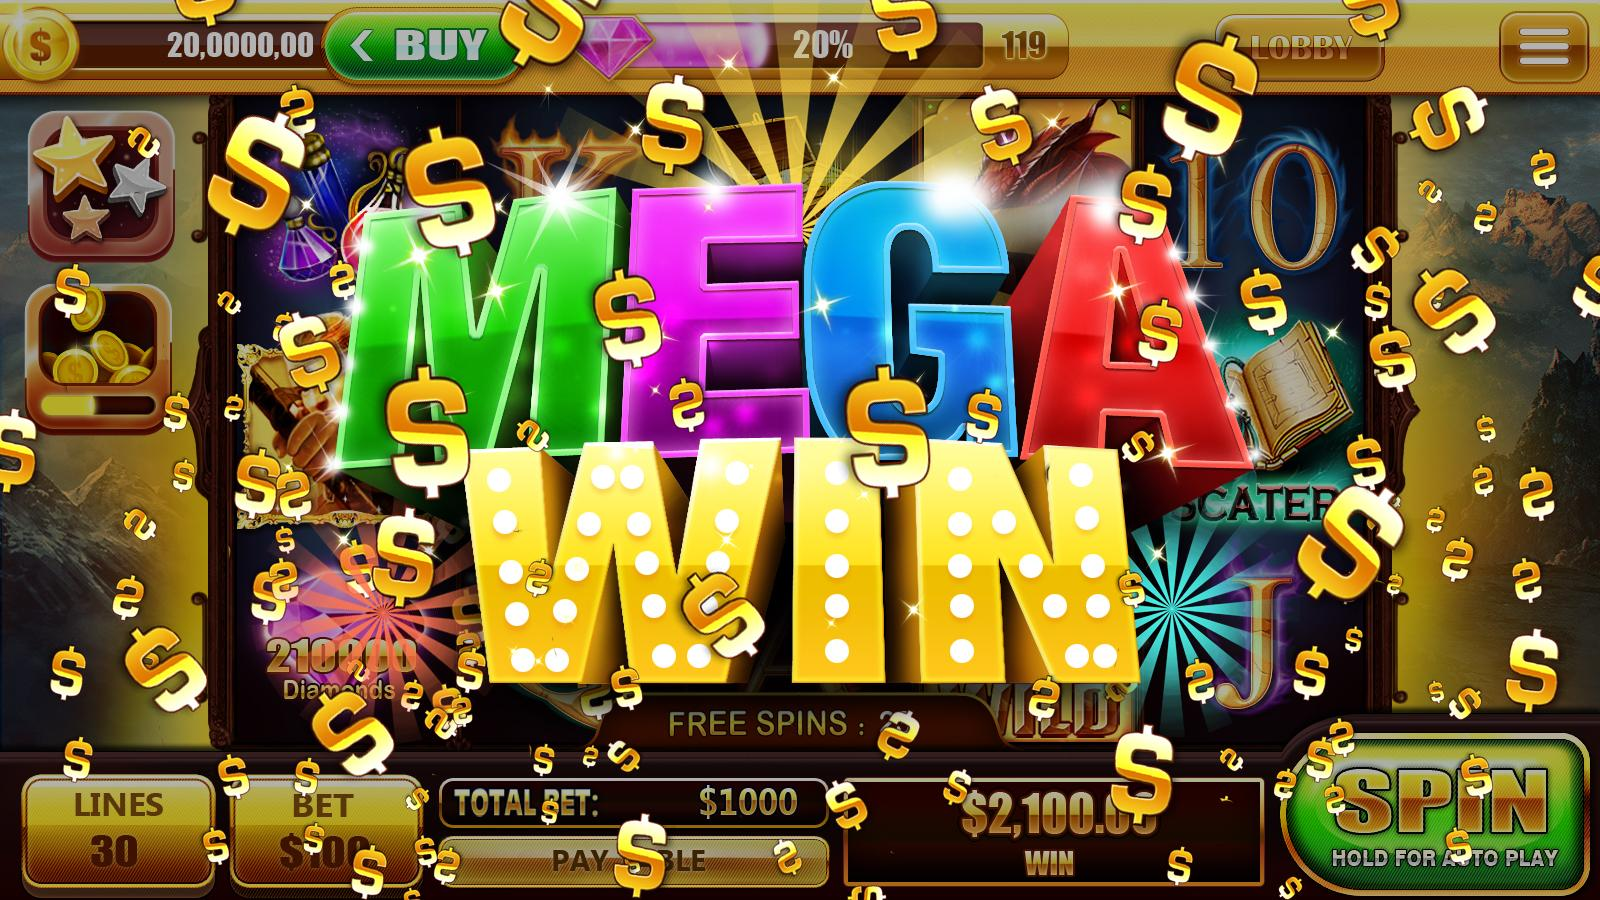 Aams slot machine online